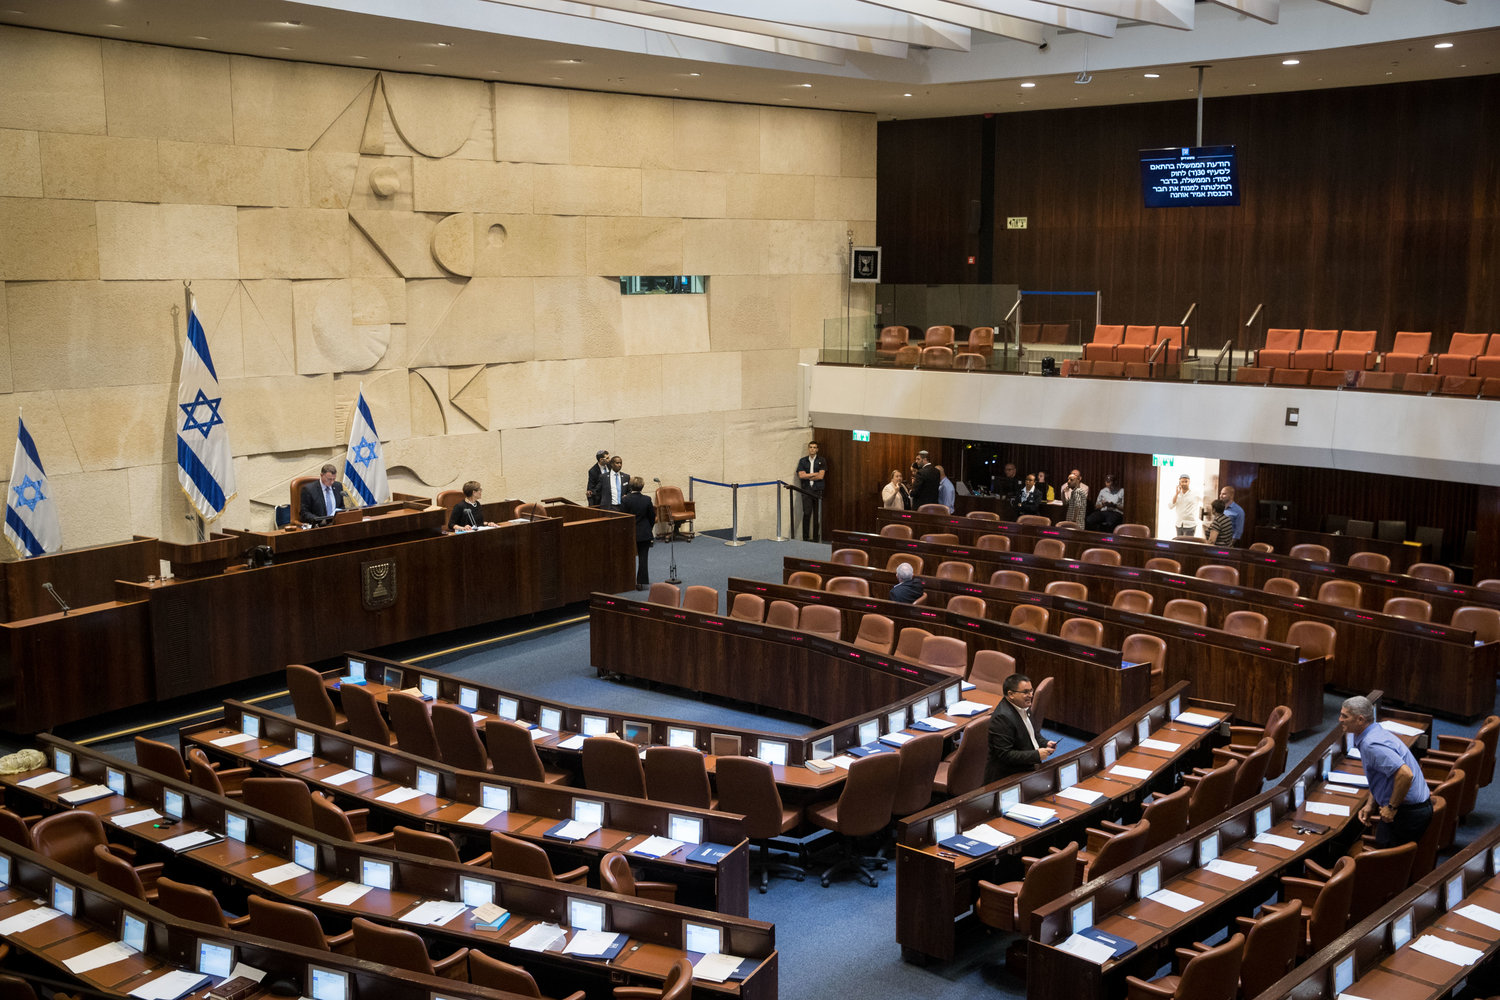 A view of the assembly hall of the Knesset in Jerusalem on June 12.